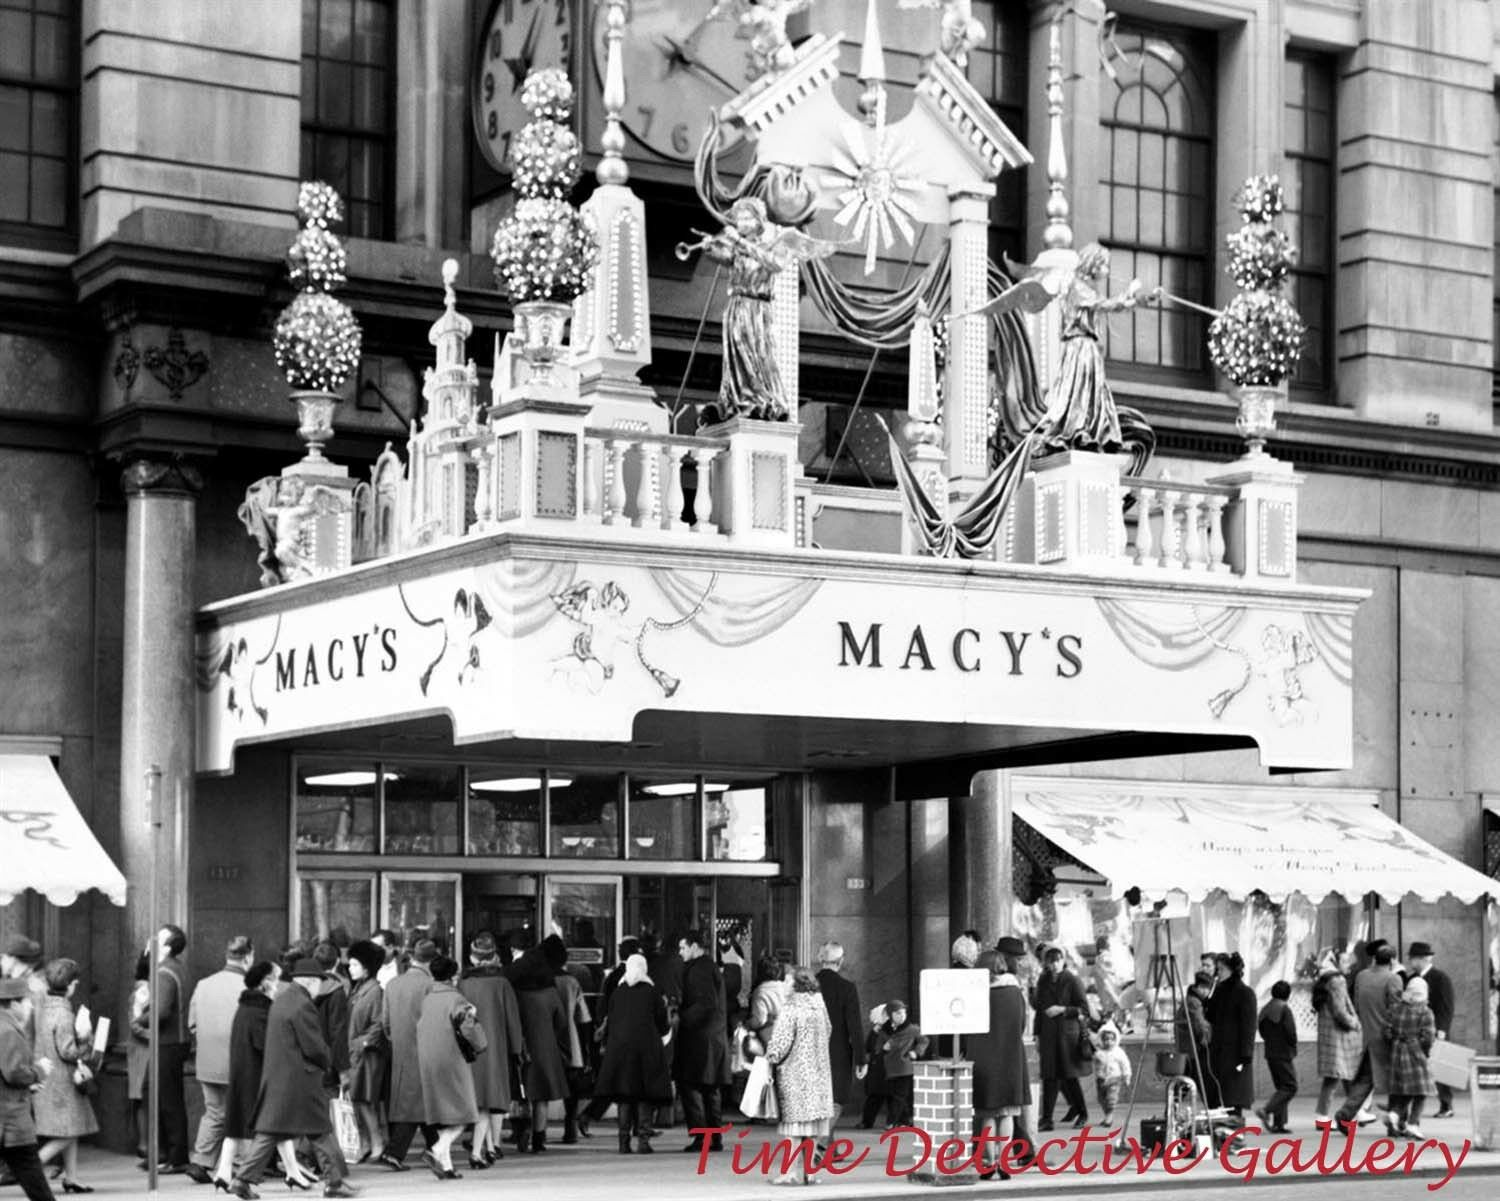 MACY\'S ENTRANCE AT Christmastime, New York City - 1940s - Historic ...